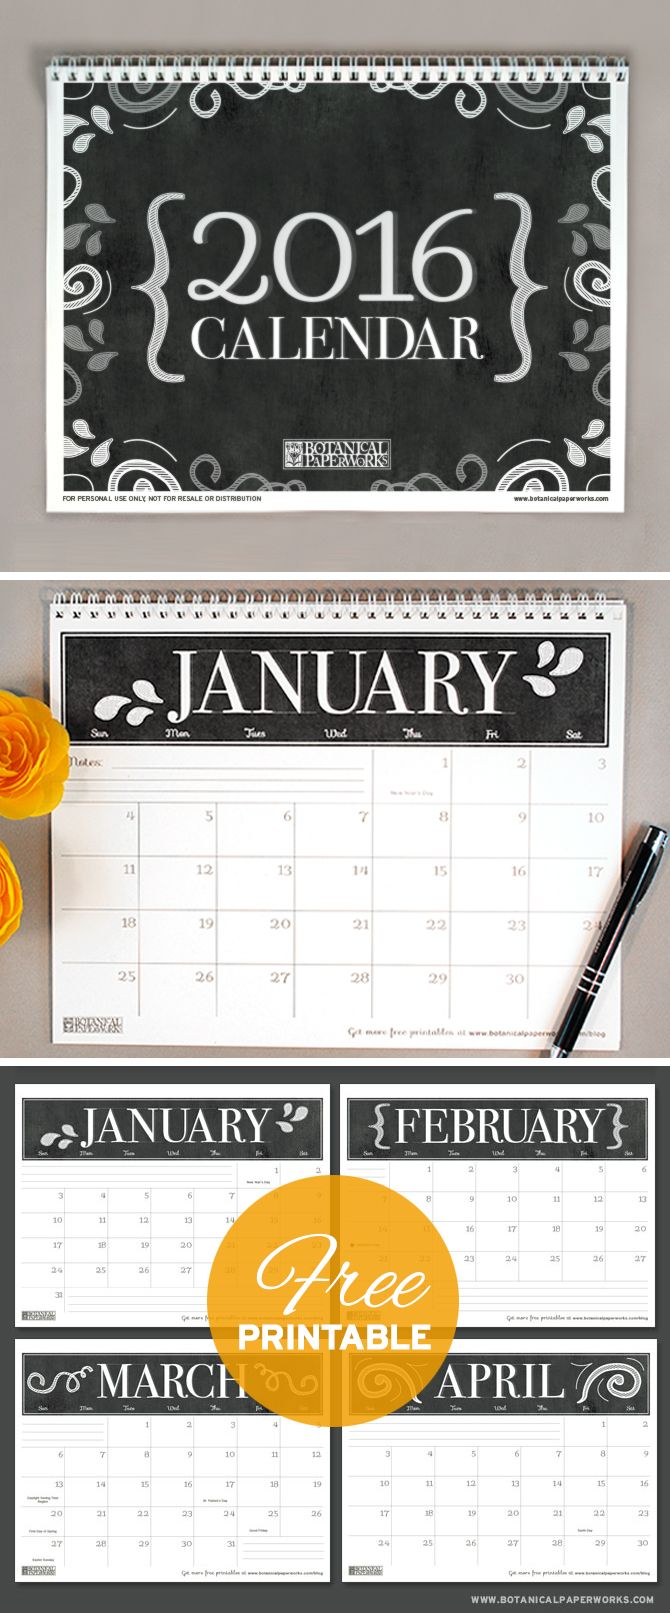 World Calendar Organization : Best images about free printable daily weekly